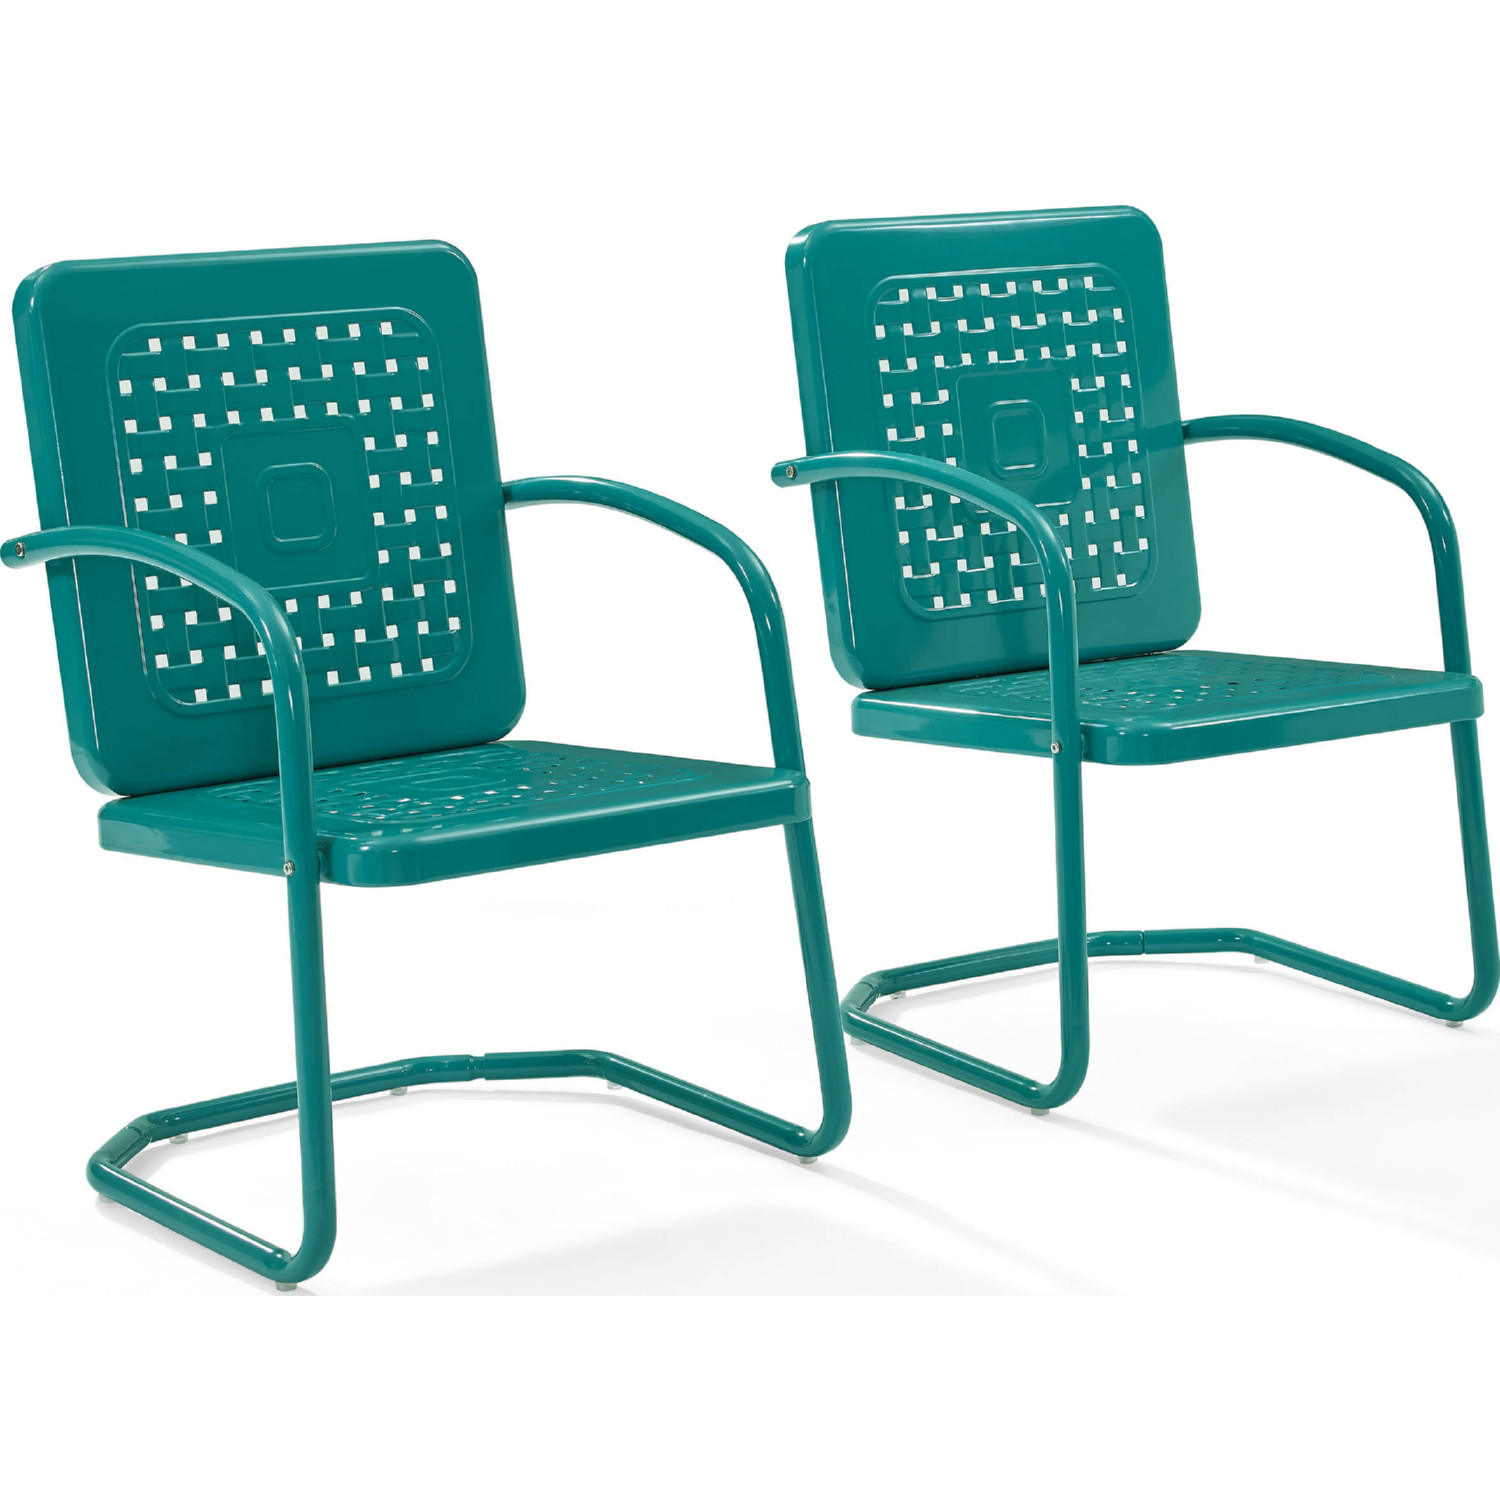 Crosley Bates Outdoor Classic Metal Chair In Turquoise (Set Of 2)